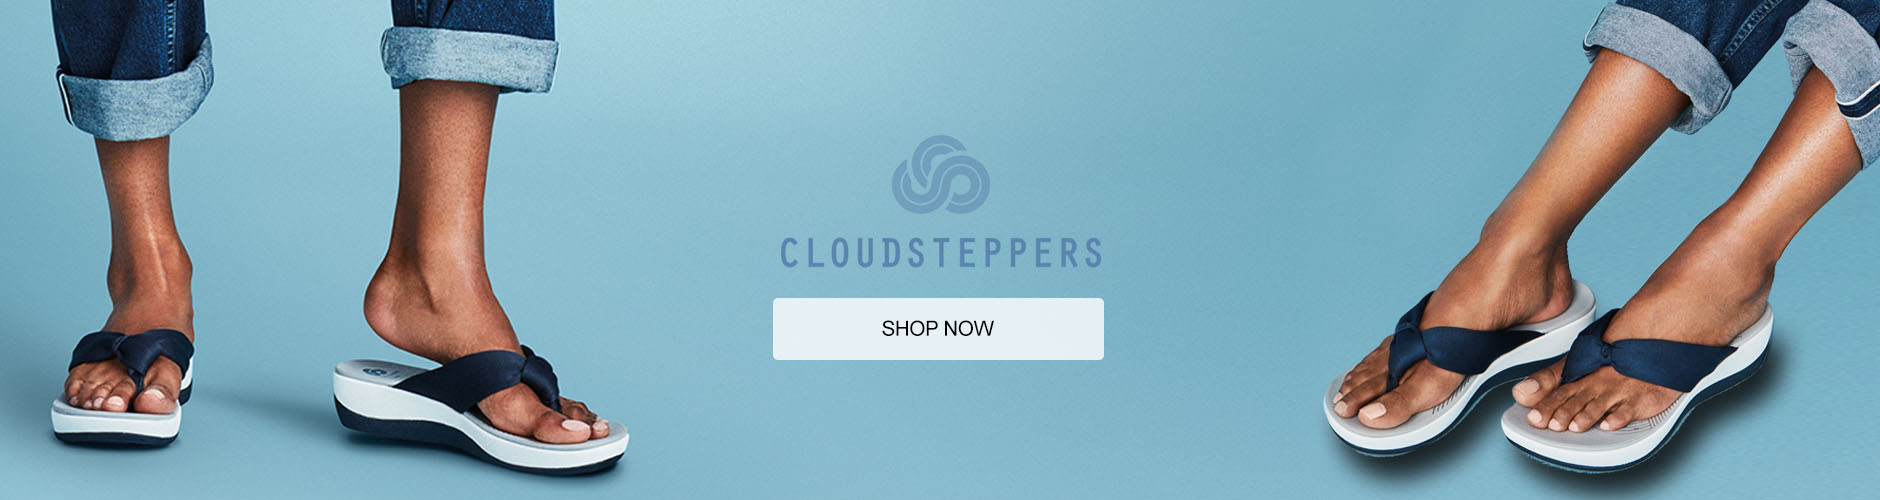 Ladies Cloudsteppers Shoes and Sandals